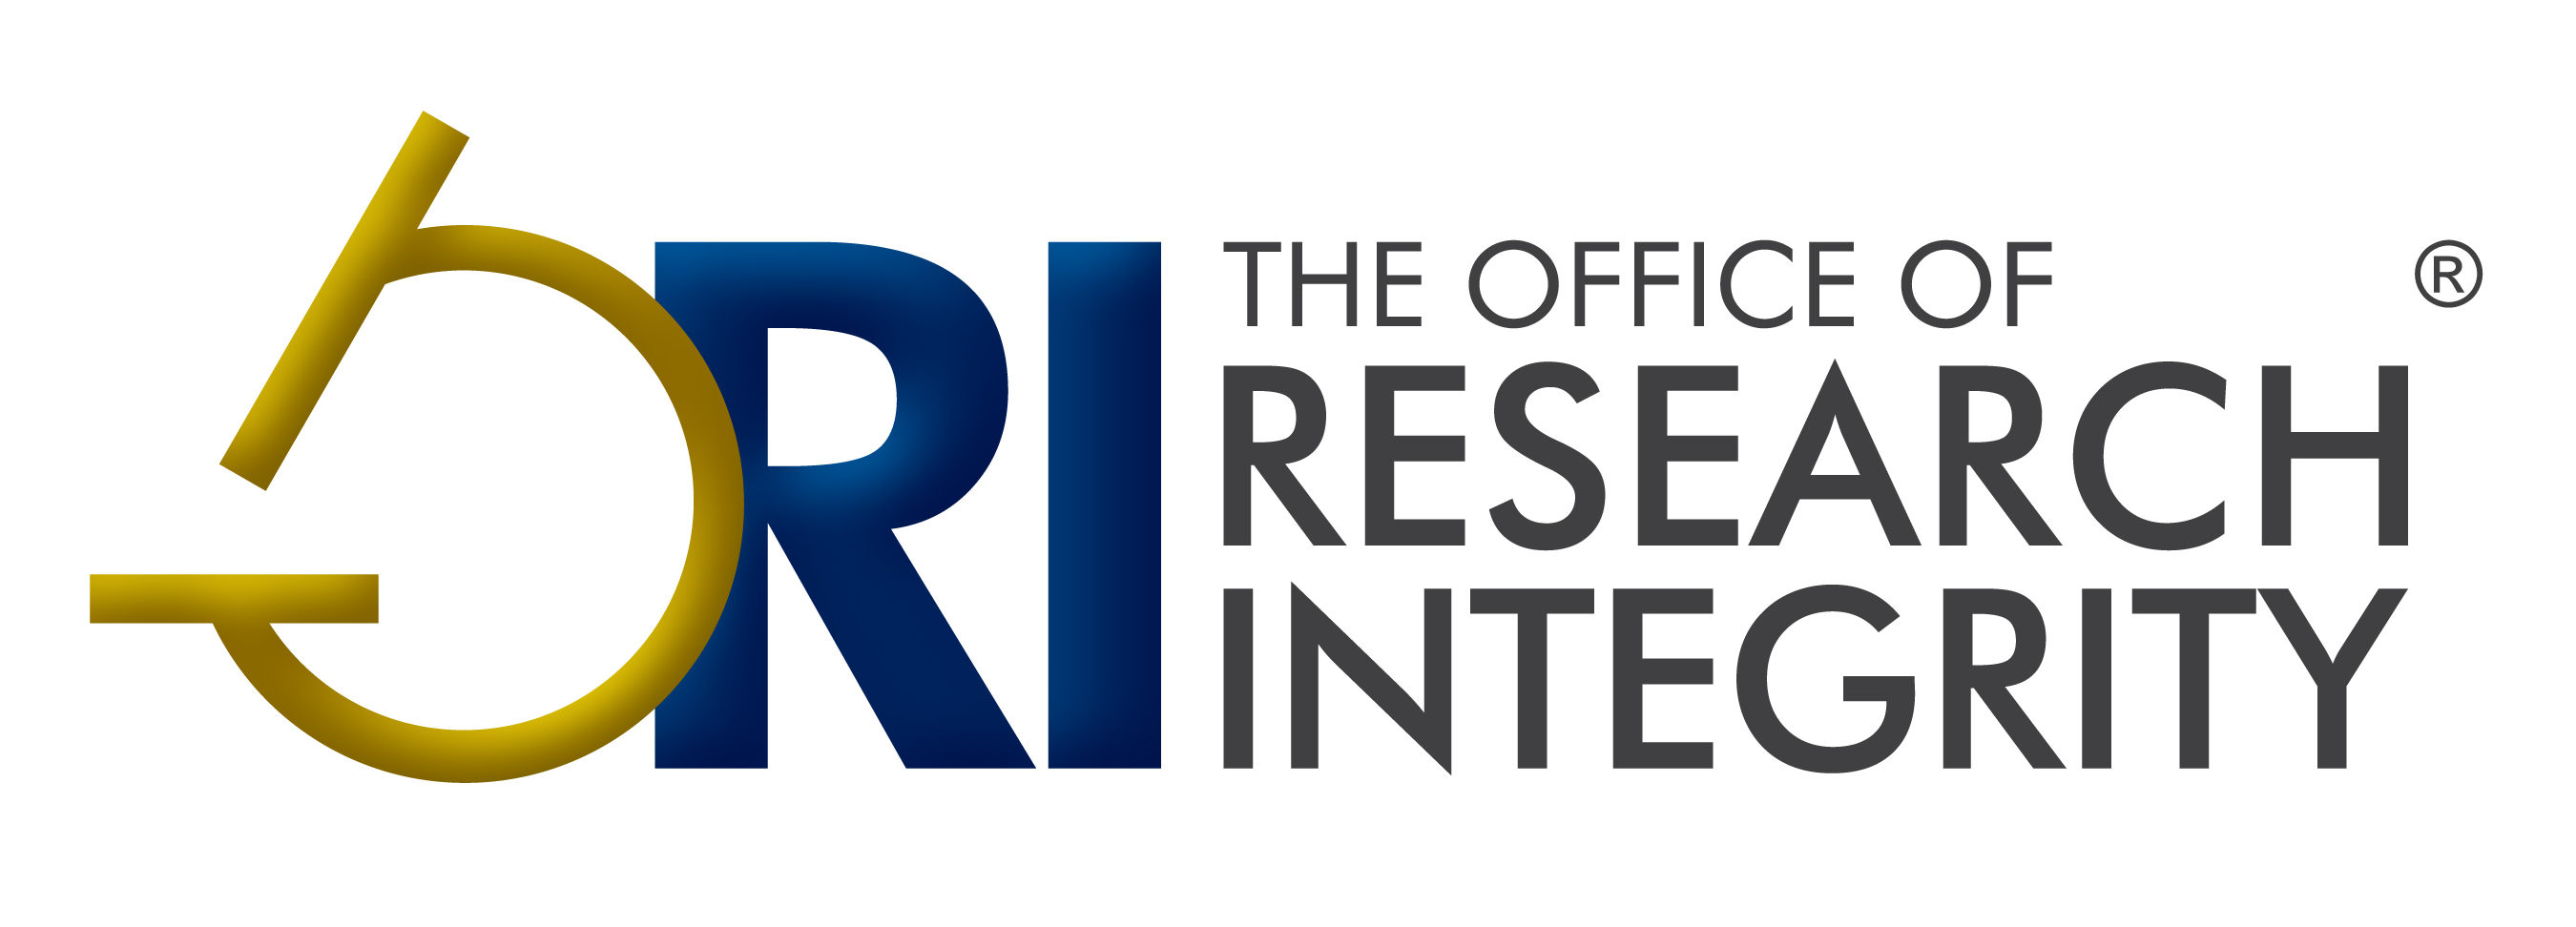 Logo Specification Guide Ori The Office Of Research Integrity